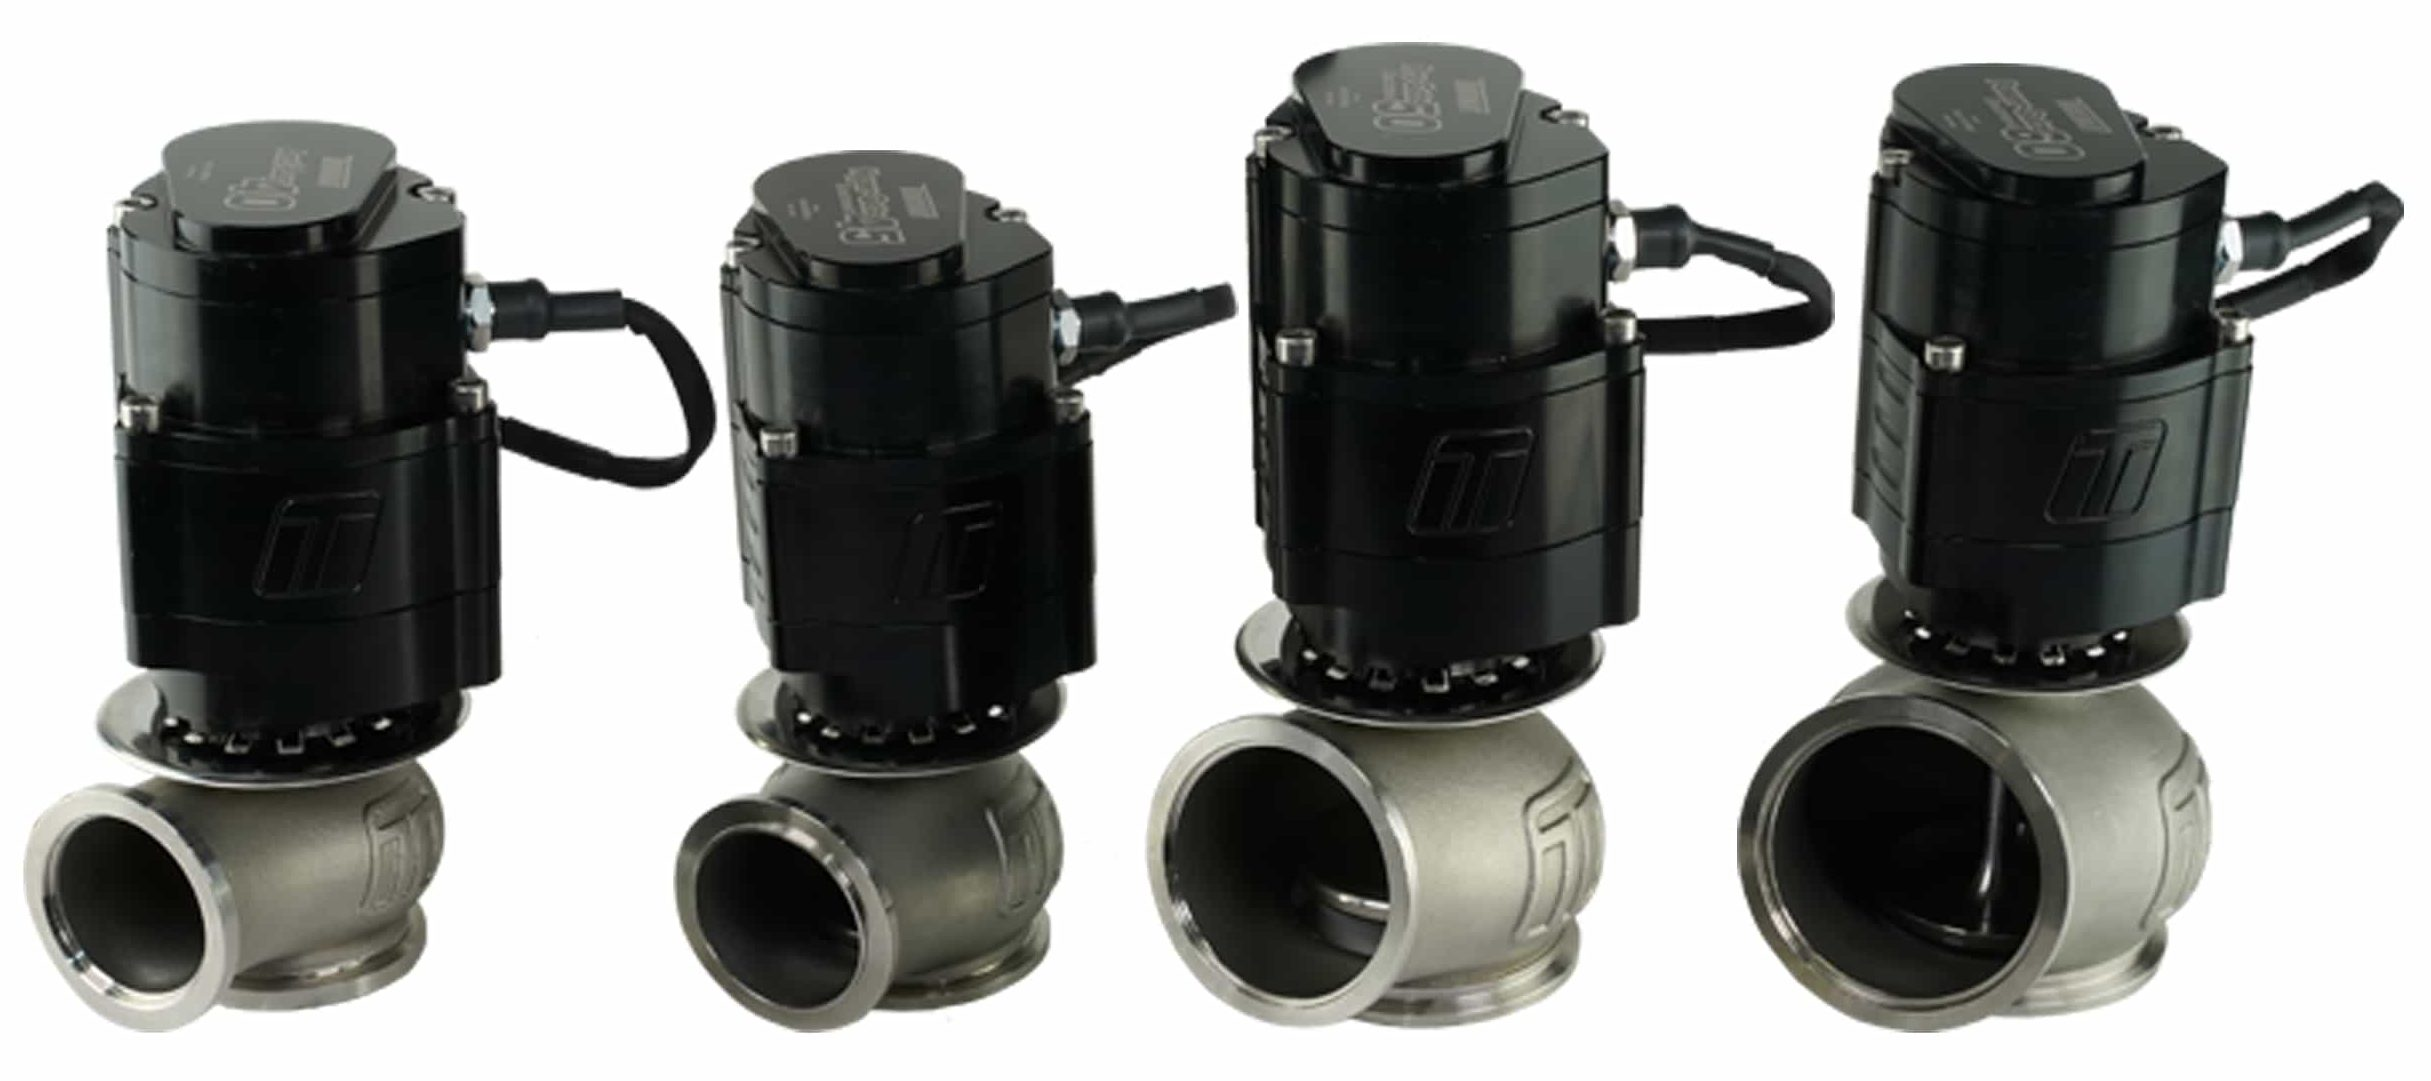 AVAILABLE NOW - Electronic Wastegates (eWG) CompGate40 & ProGate50